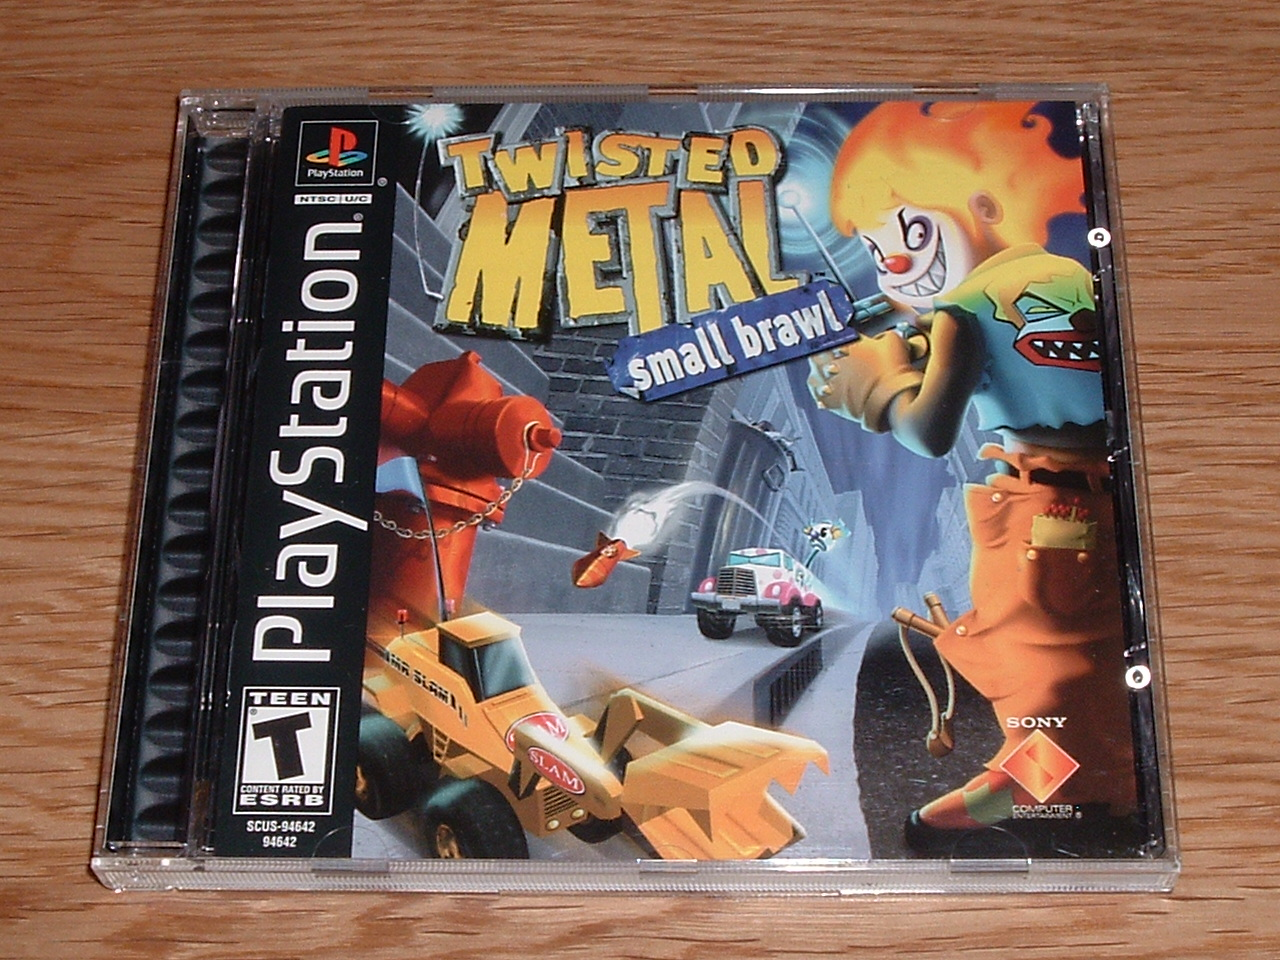 Price of the game Twisted Metal: Small Brawl